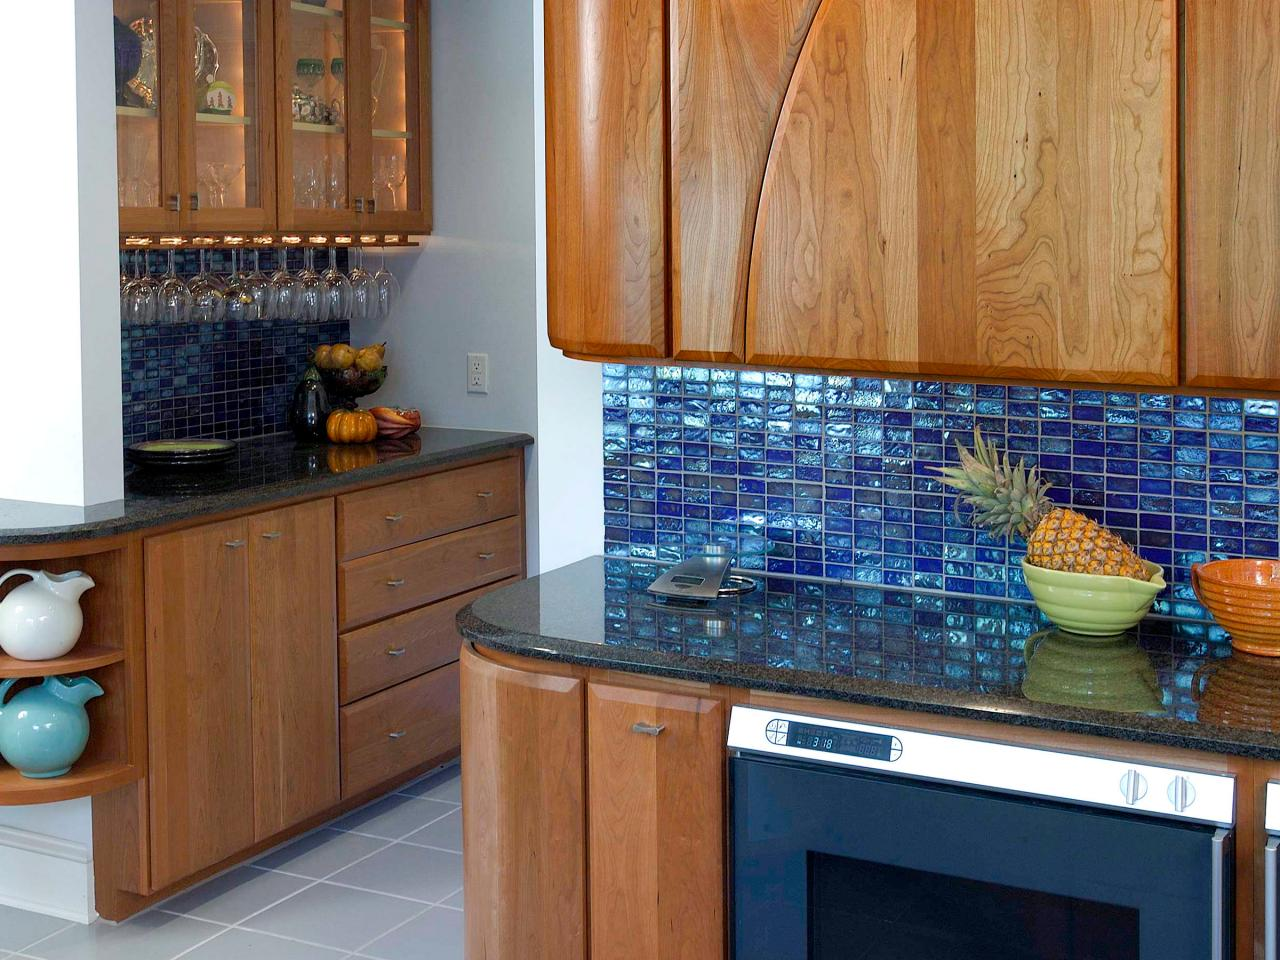 Mid Range Ceramic Tile Backsplash